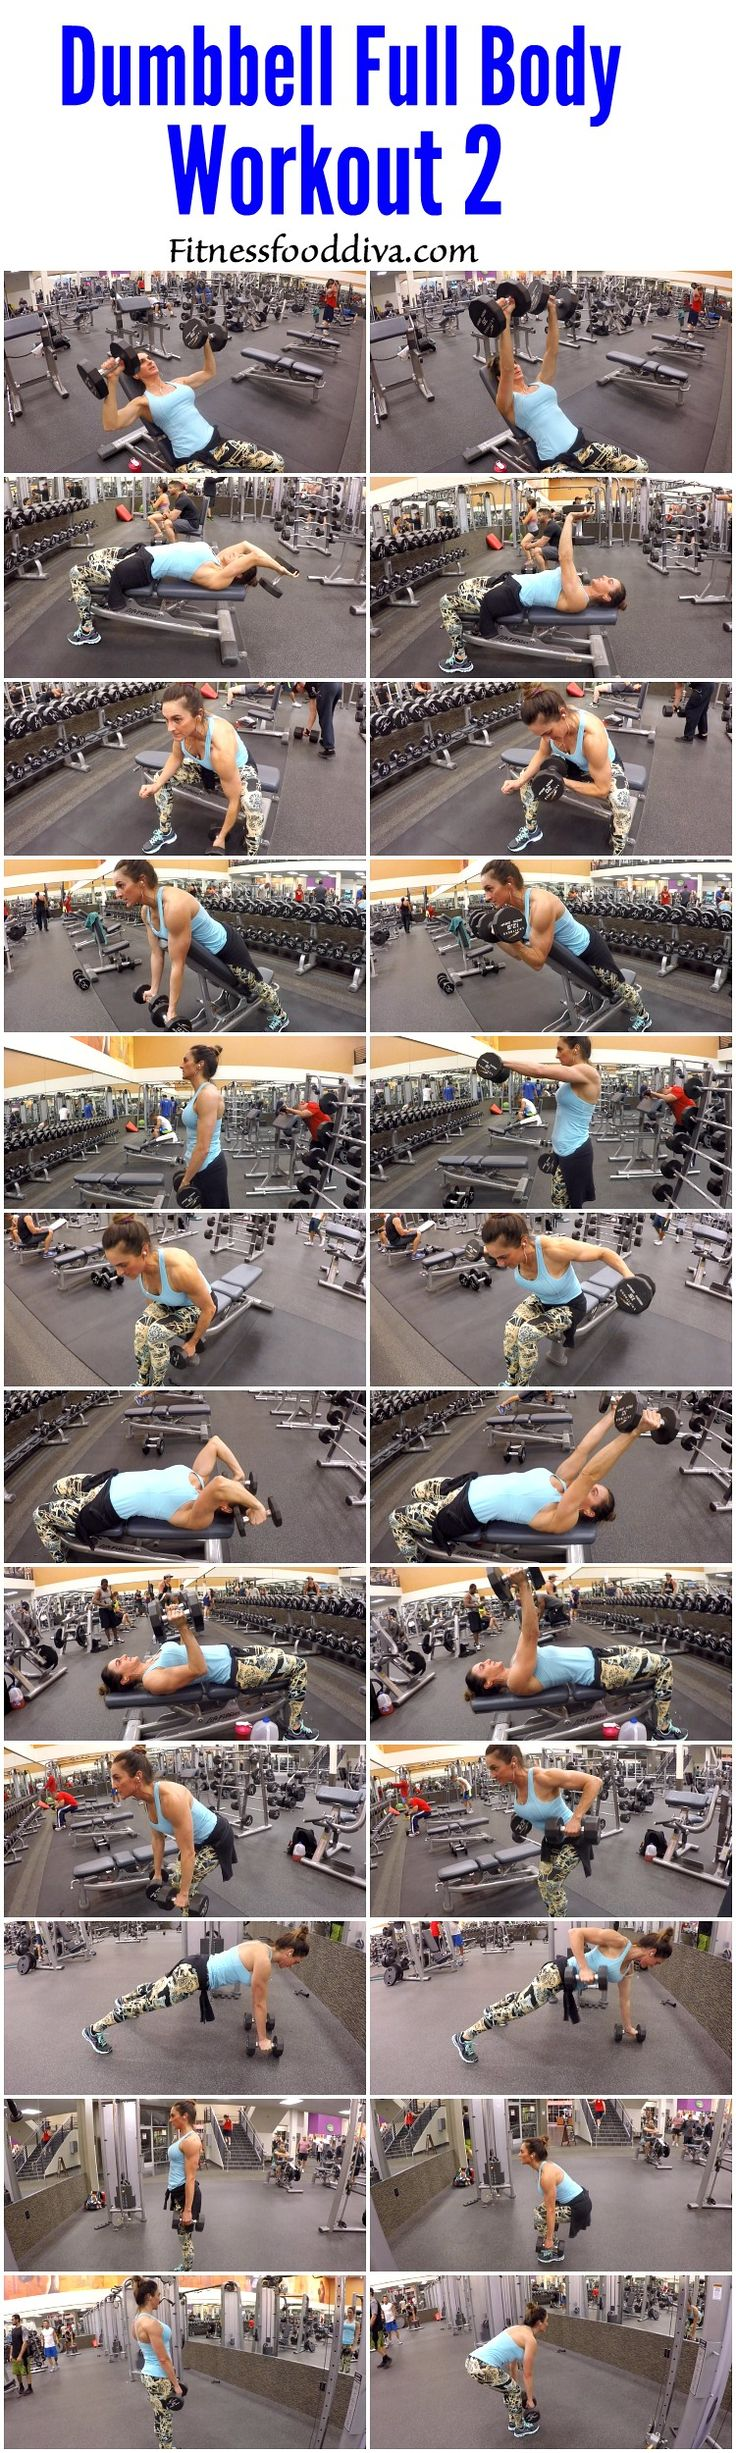 Full body workout for at home or the gym!